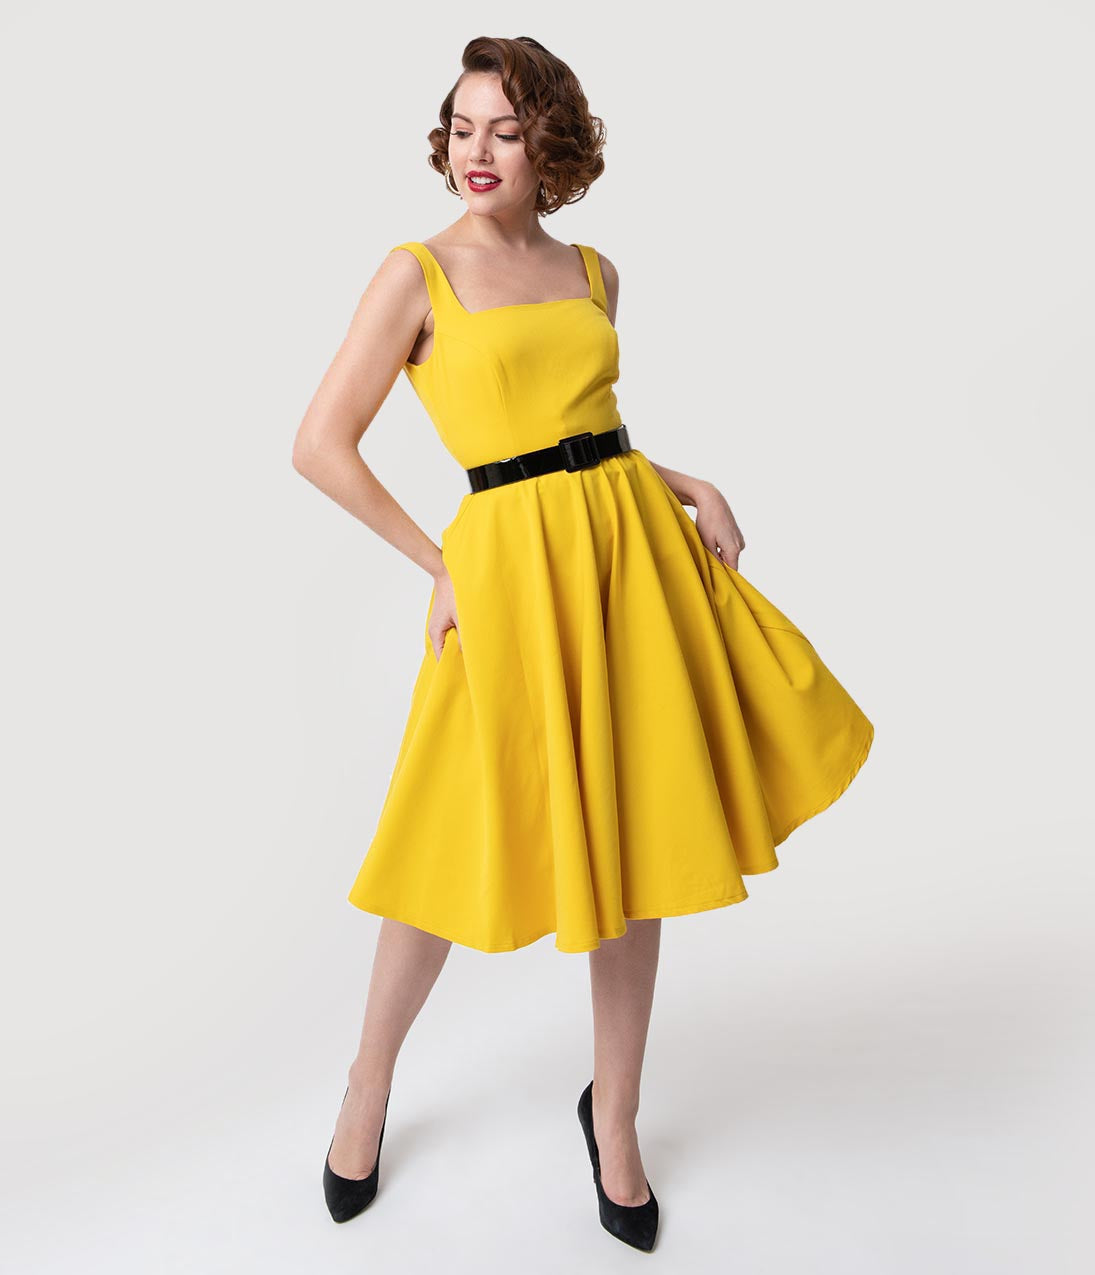 1950s Swing Dresses | 50s Swing Dress Glamour Bunny 1950S Style Yellow Sleeveless Rachel Swing Dress $126.00 AT vintagedancer.com